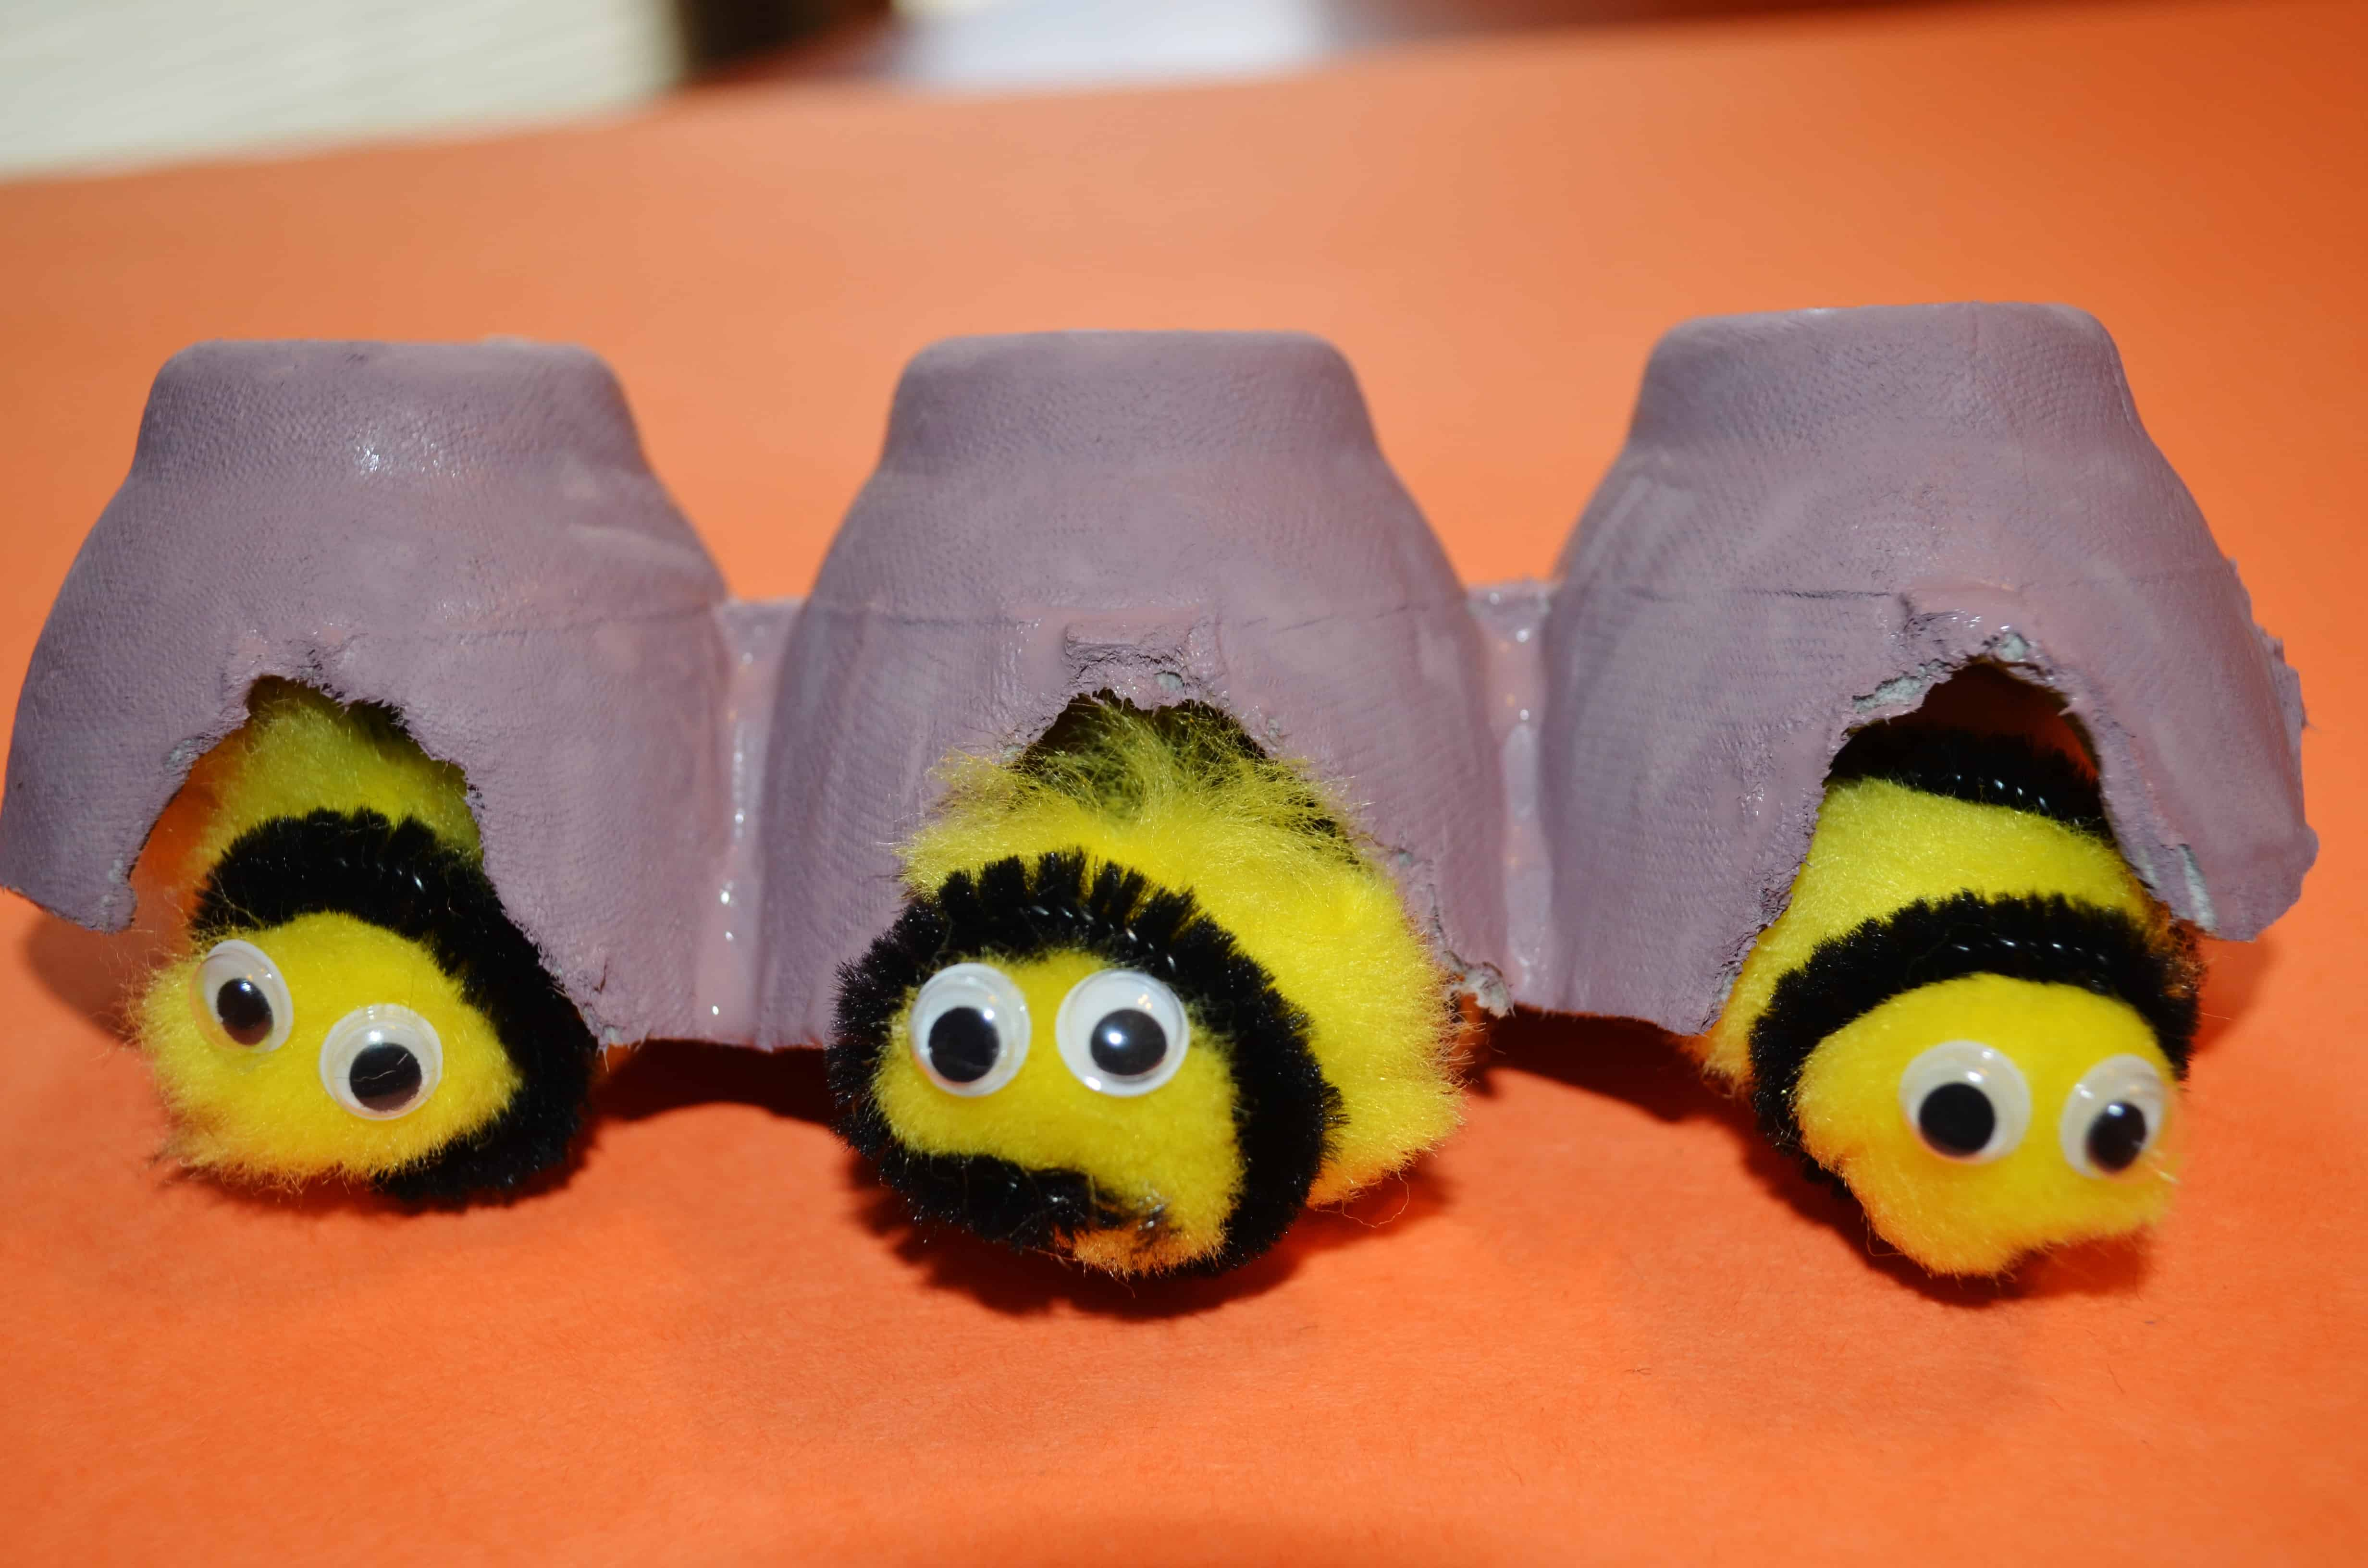 Pom pom bees with egg carton hives